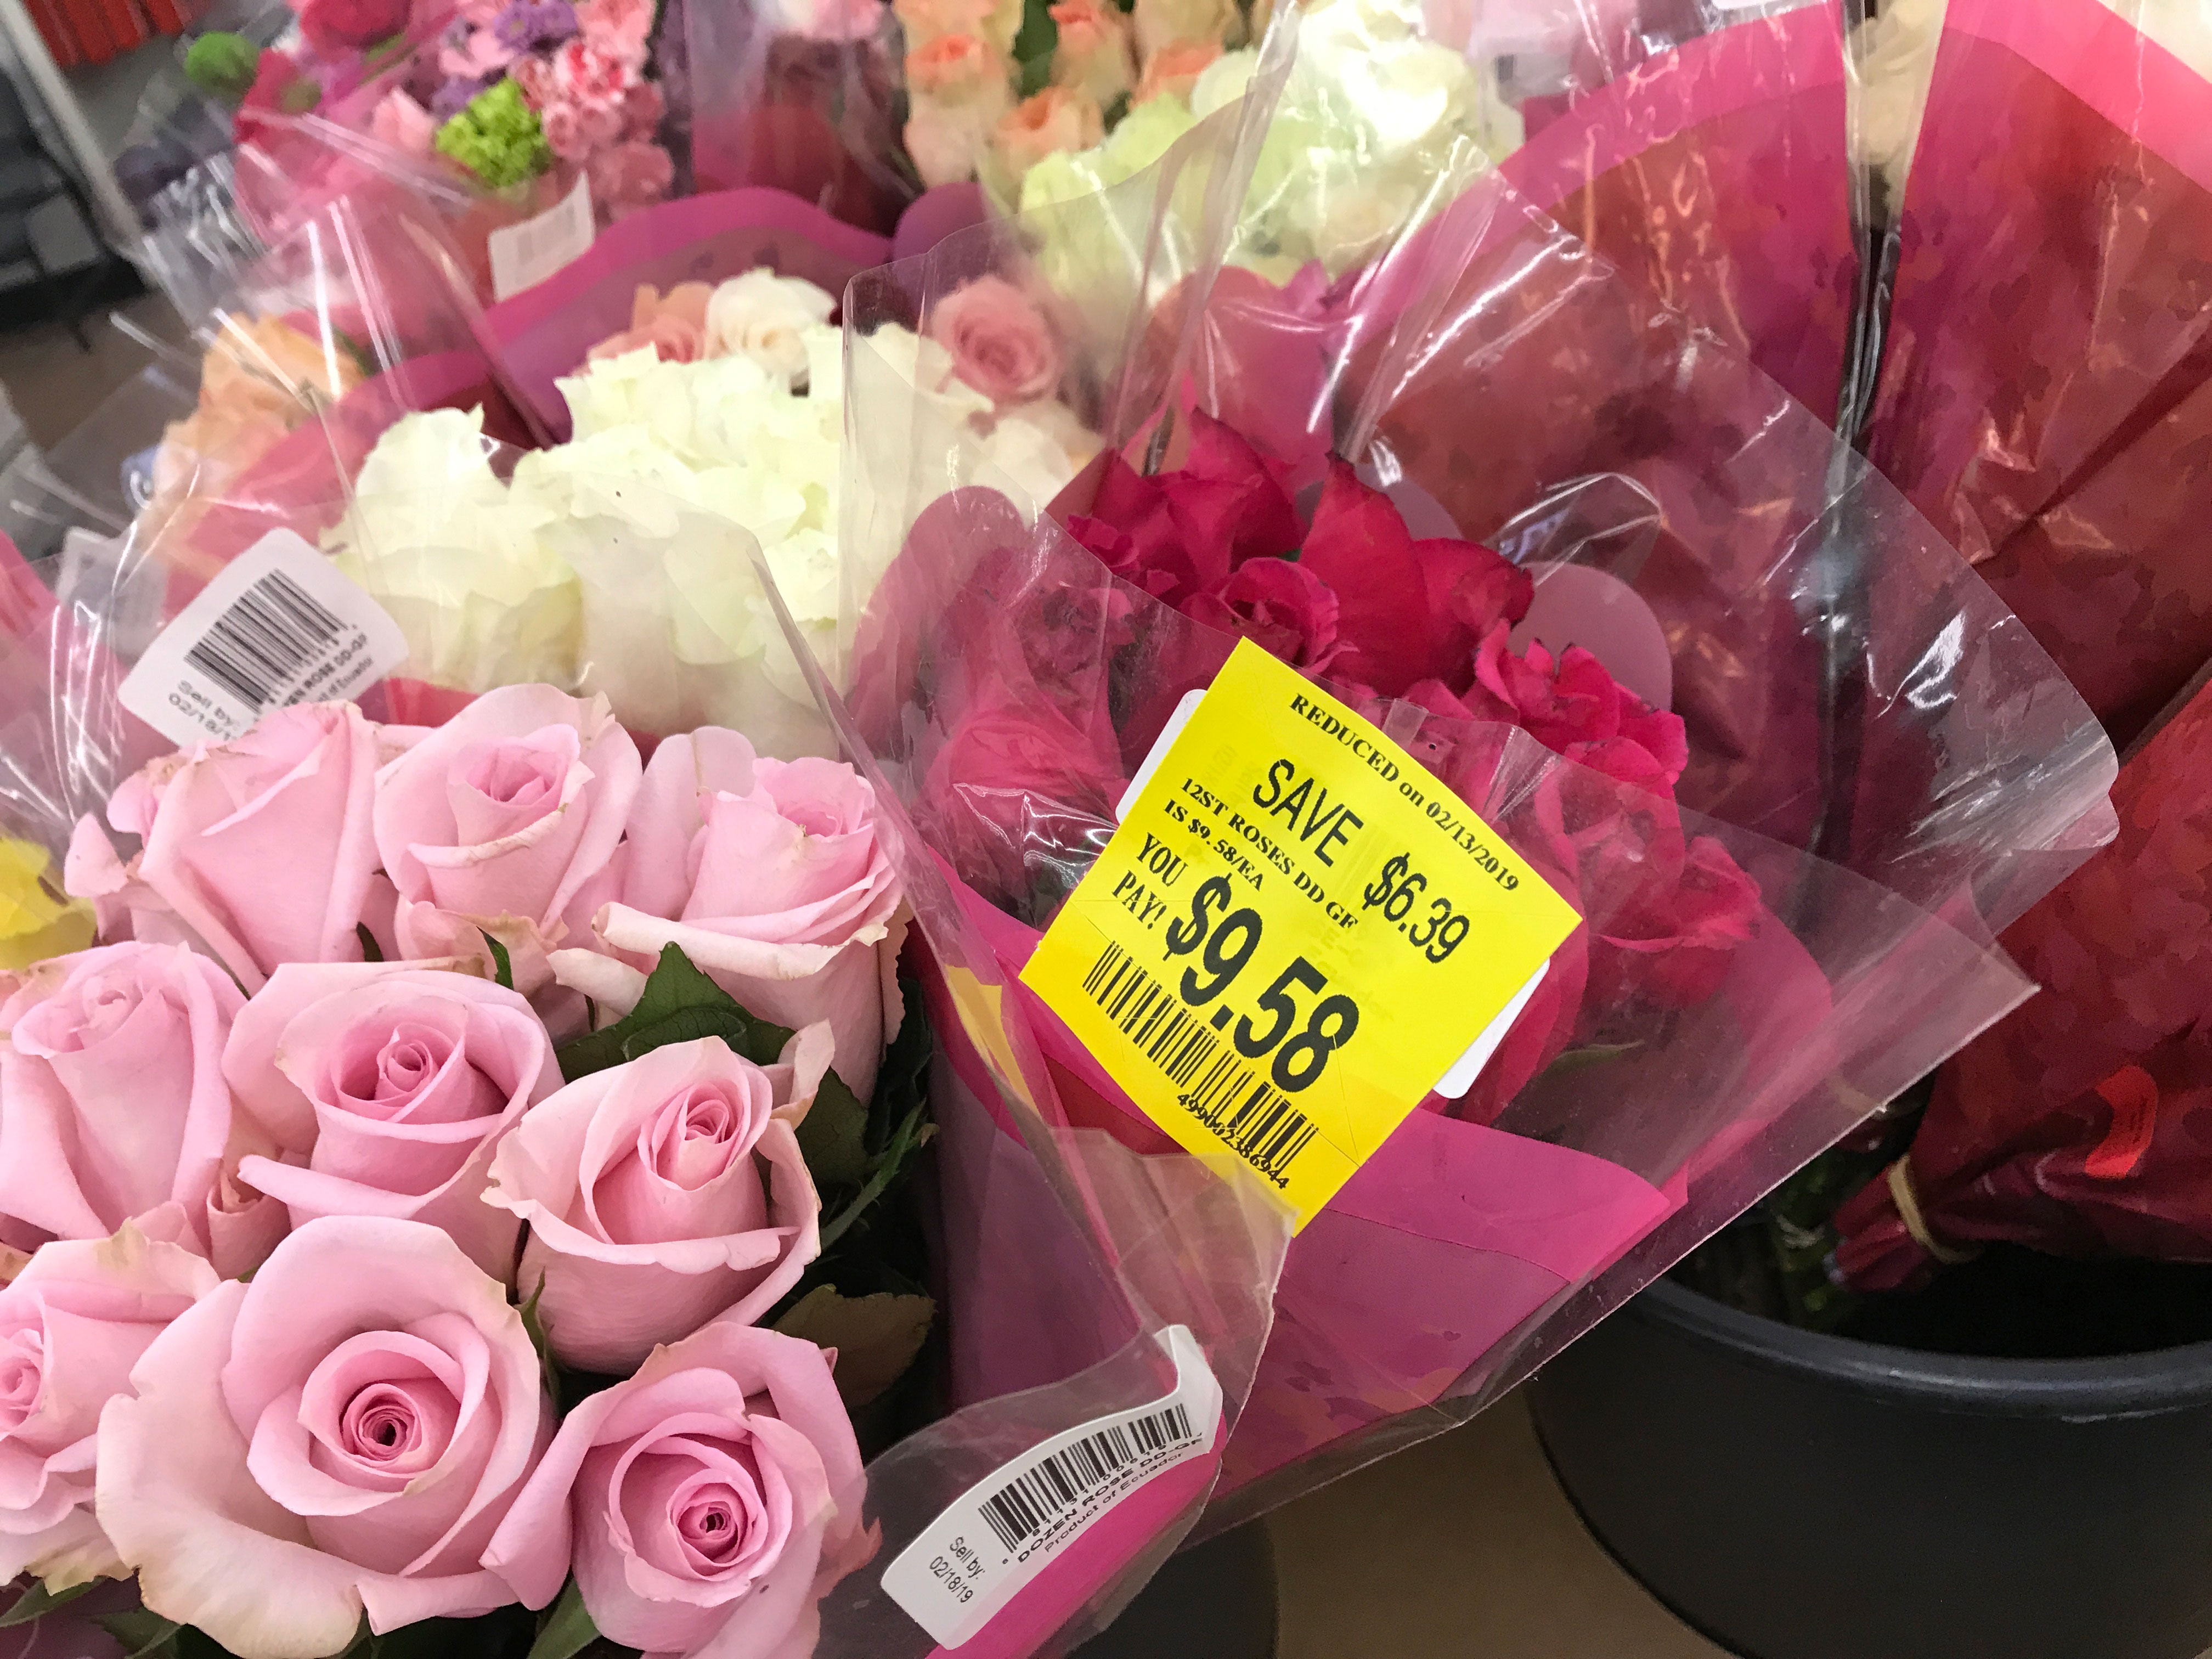 40da226cfe27 50% Off Valentine s Day Clearance at Walmart! - A Couponer s Life